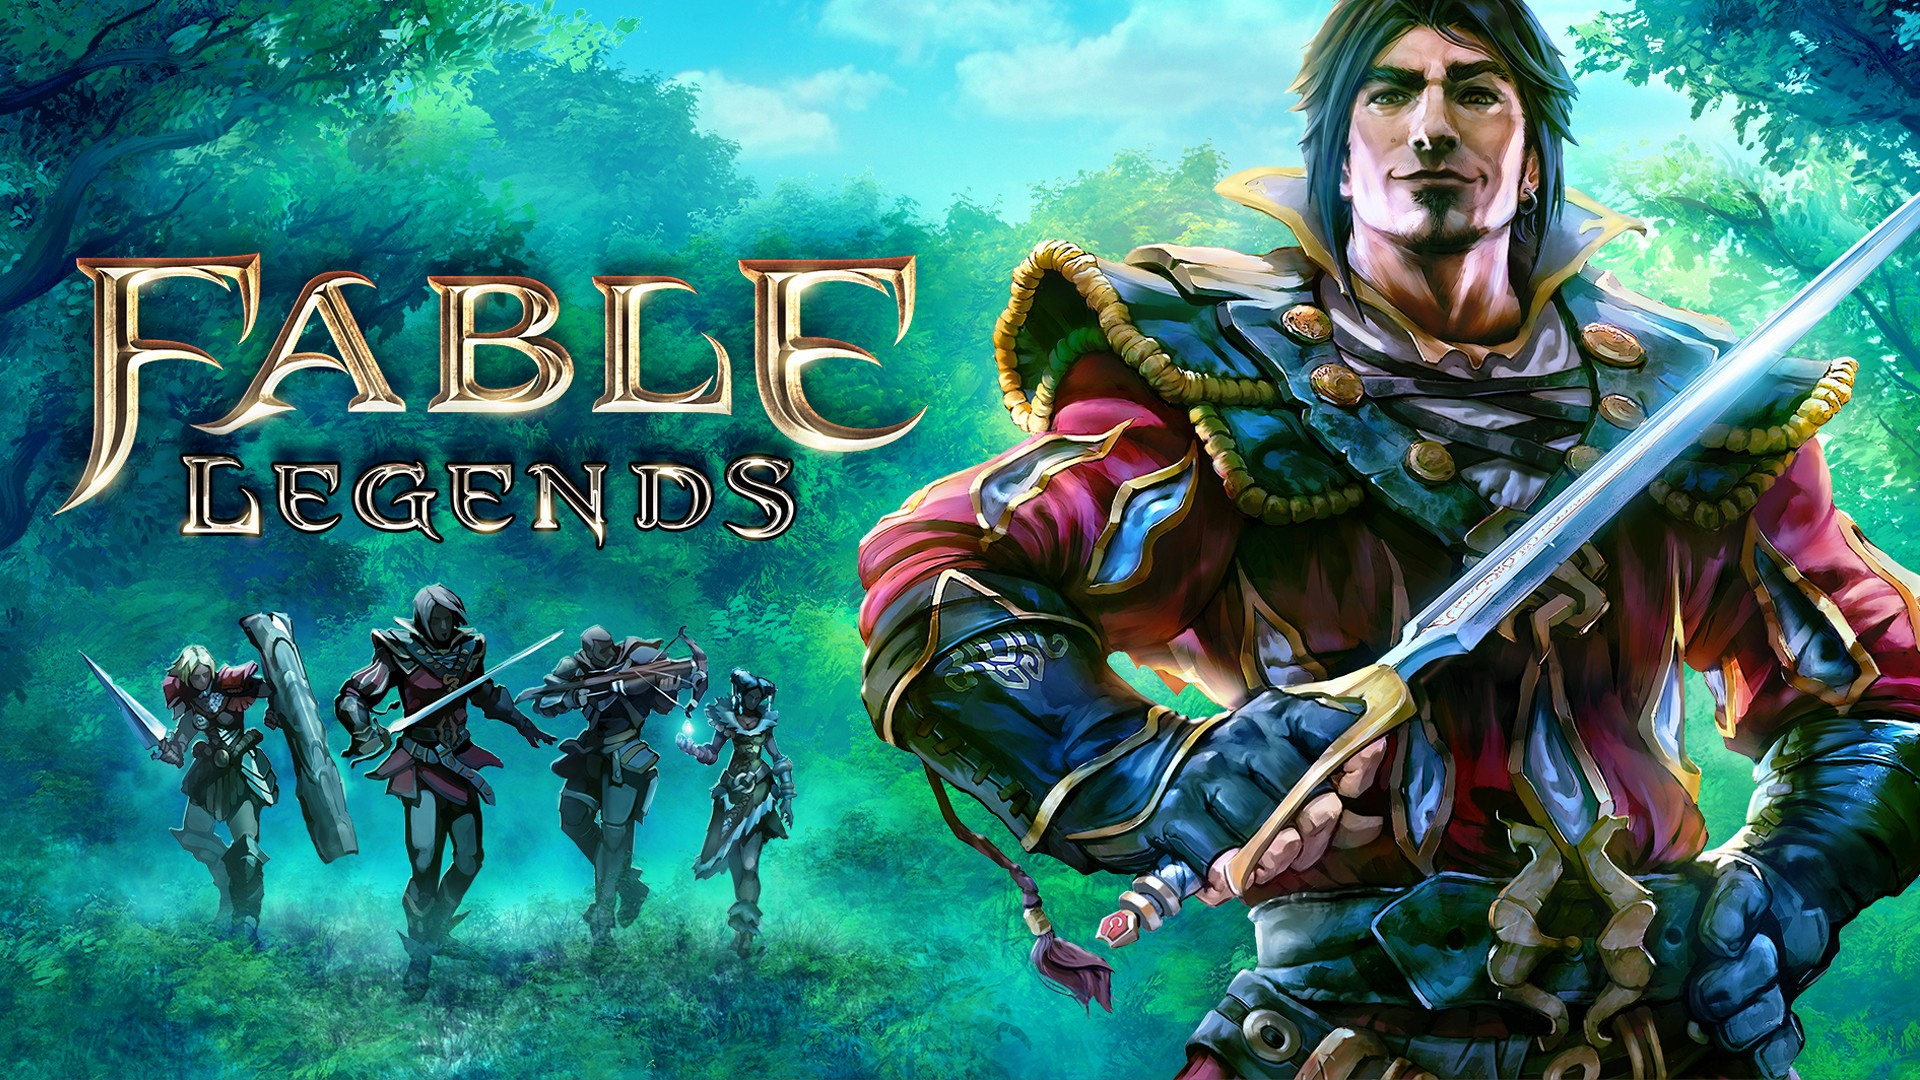 Video Game Fable Legends HD Wallpaper